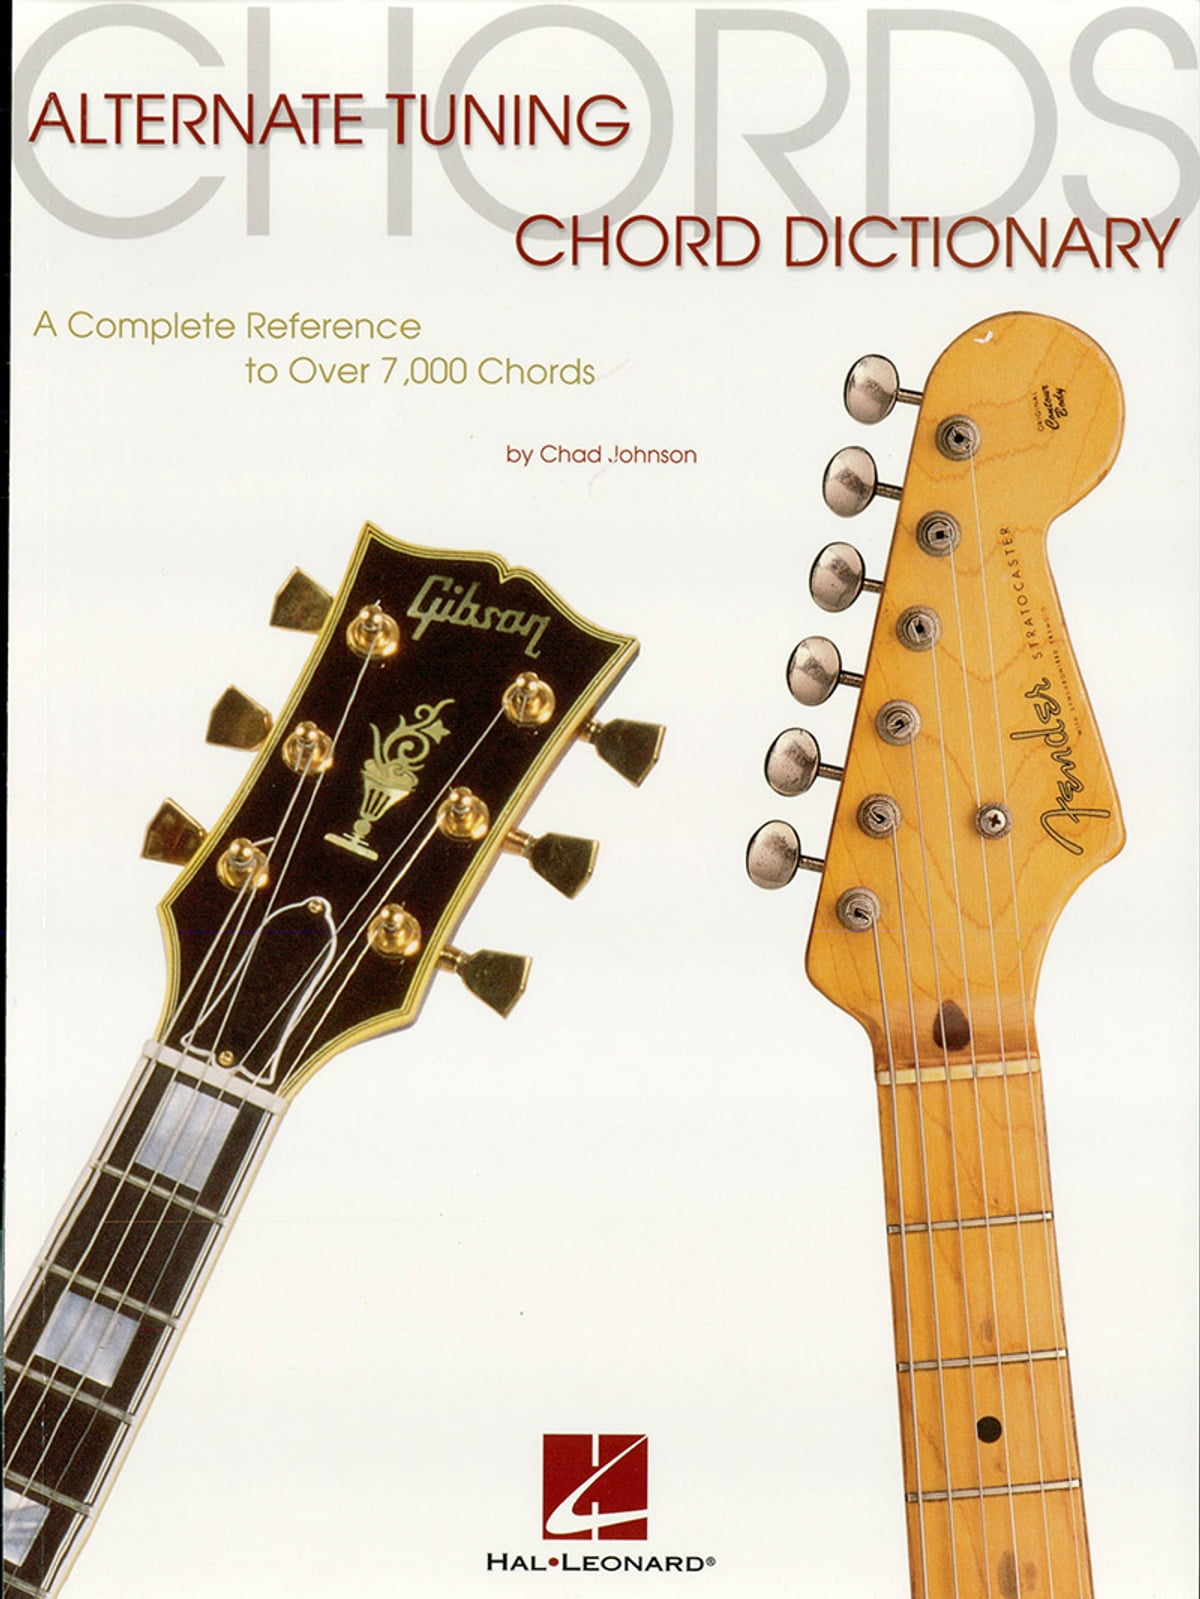 Alternate Tuning Chord Dictionary Ebook By Chad Johnson